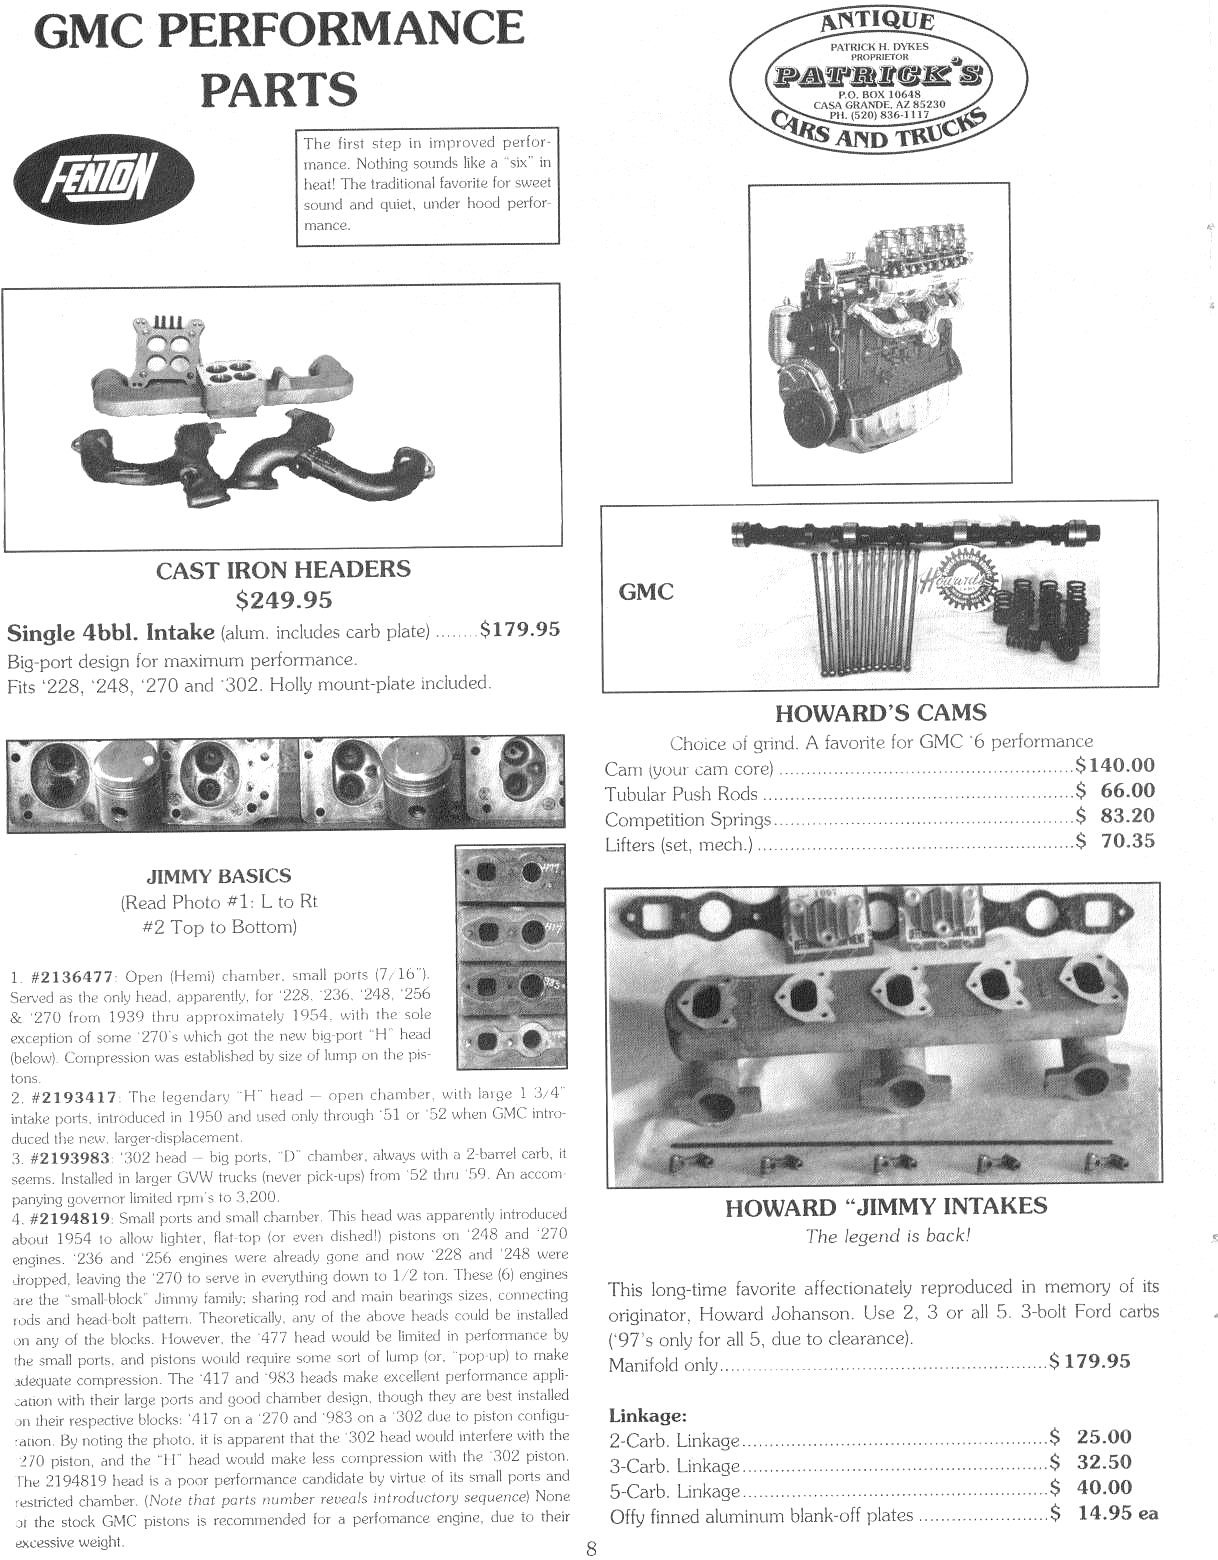 OldGMCtrucks com - 228 248 270 302 GMC Engine Tune Up